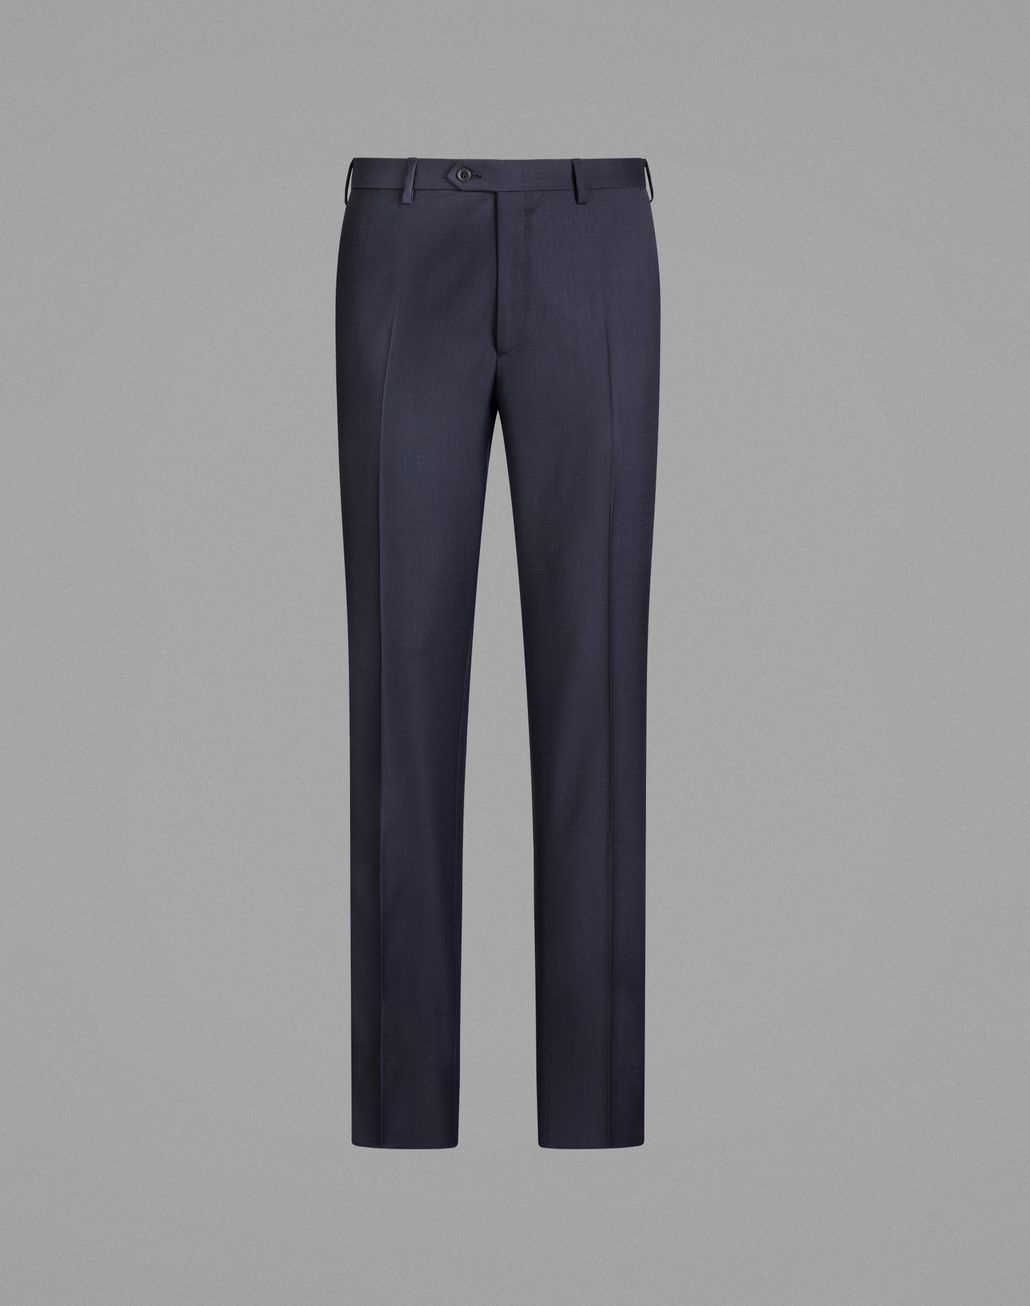 BRIONI 'Essential' Navy Blue Tigullio Pants Trousers Man f